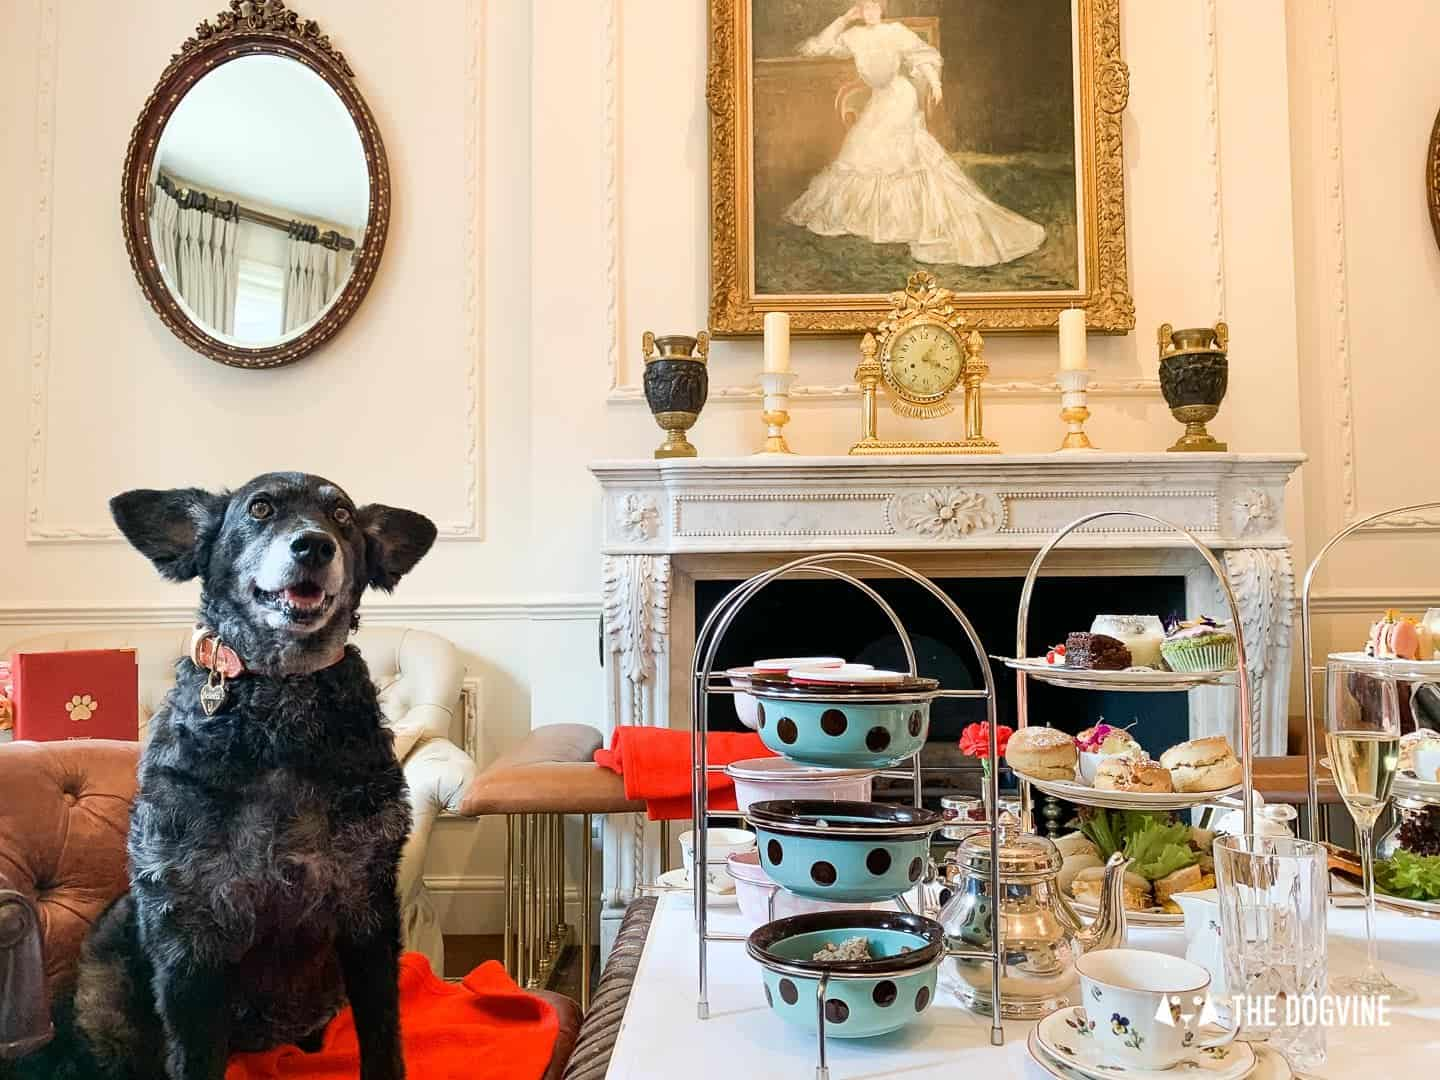 Dog-friendly London | The Best Dog-friendly Things To Do in London - Afternoon Tea